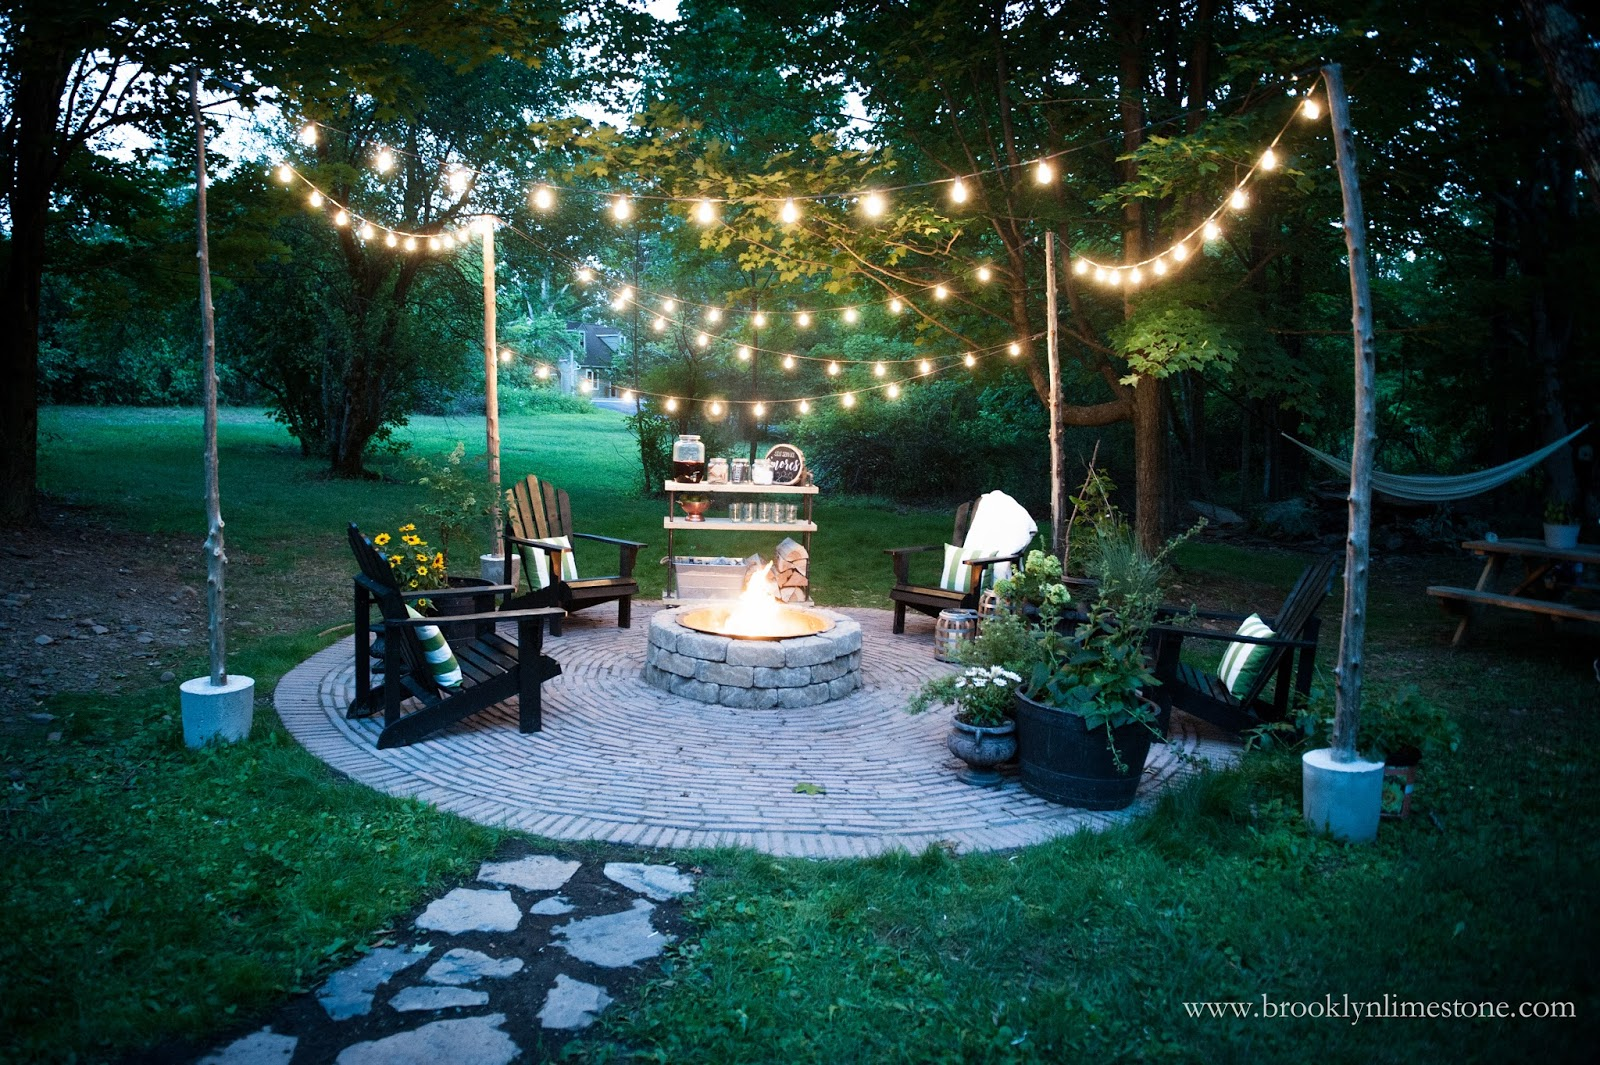 Firepit Patio - Country Cottage DIY Circular Outdoor ... on Backyard Patio With Firepit id=89720